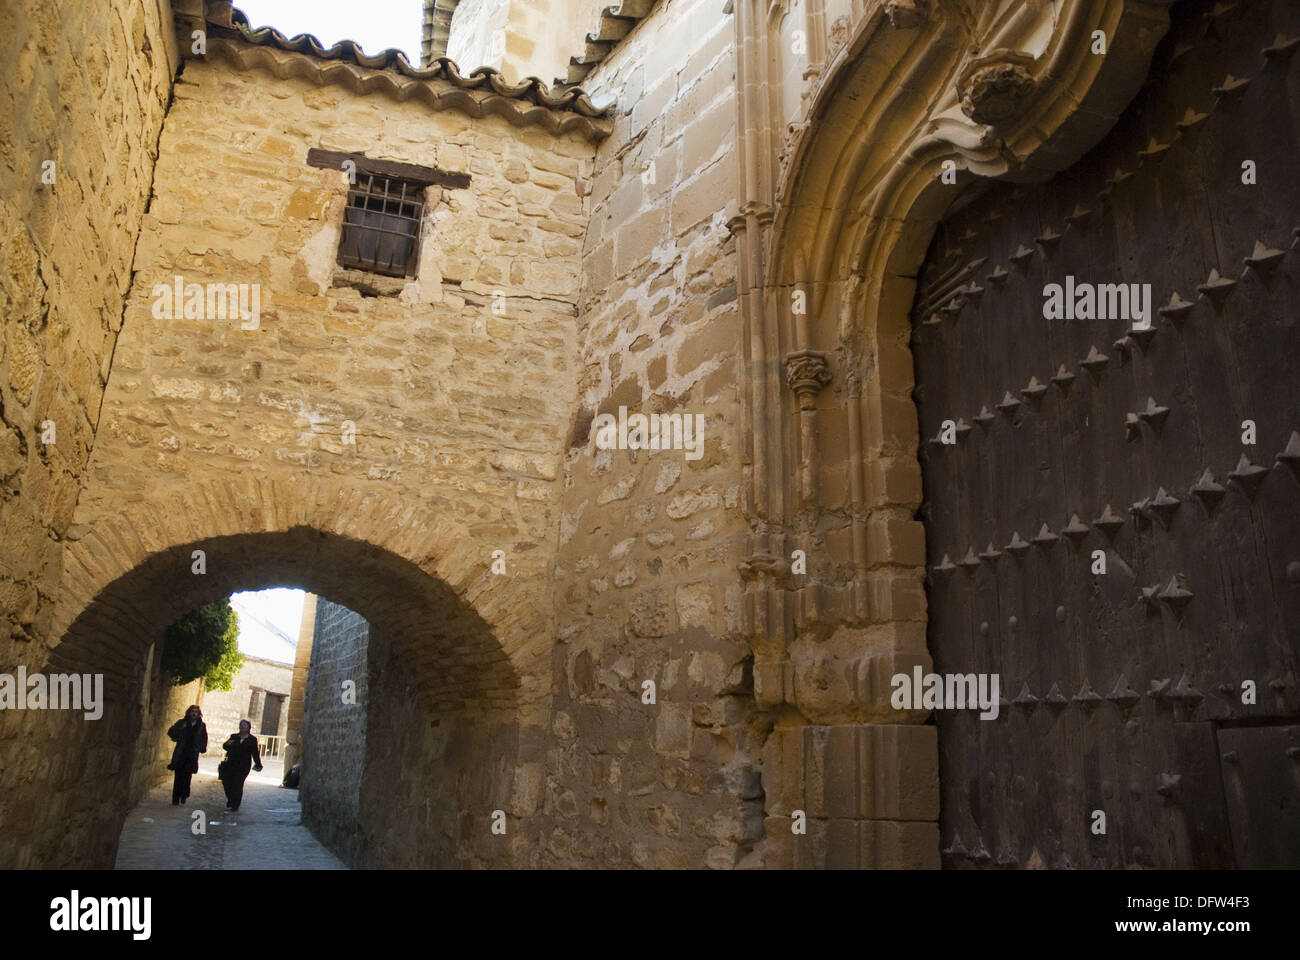 Lateral façade of cathedral, Baeza. Jaen province, Andalusia, Spain - Stock Image